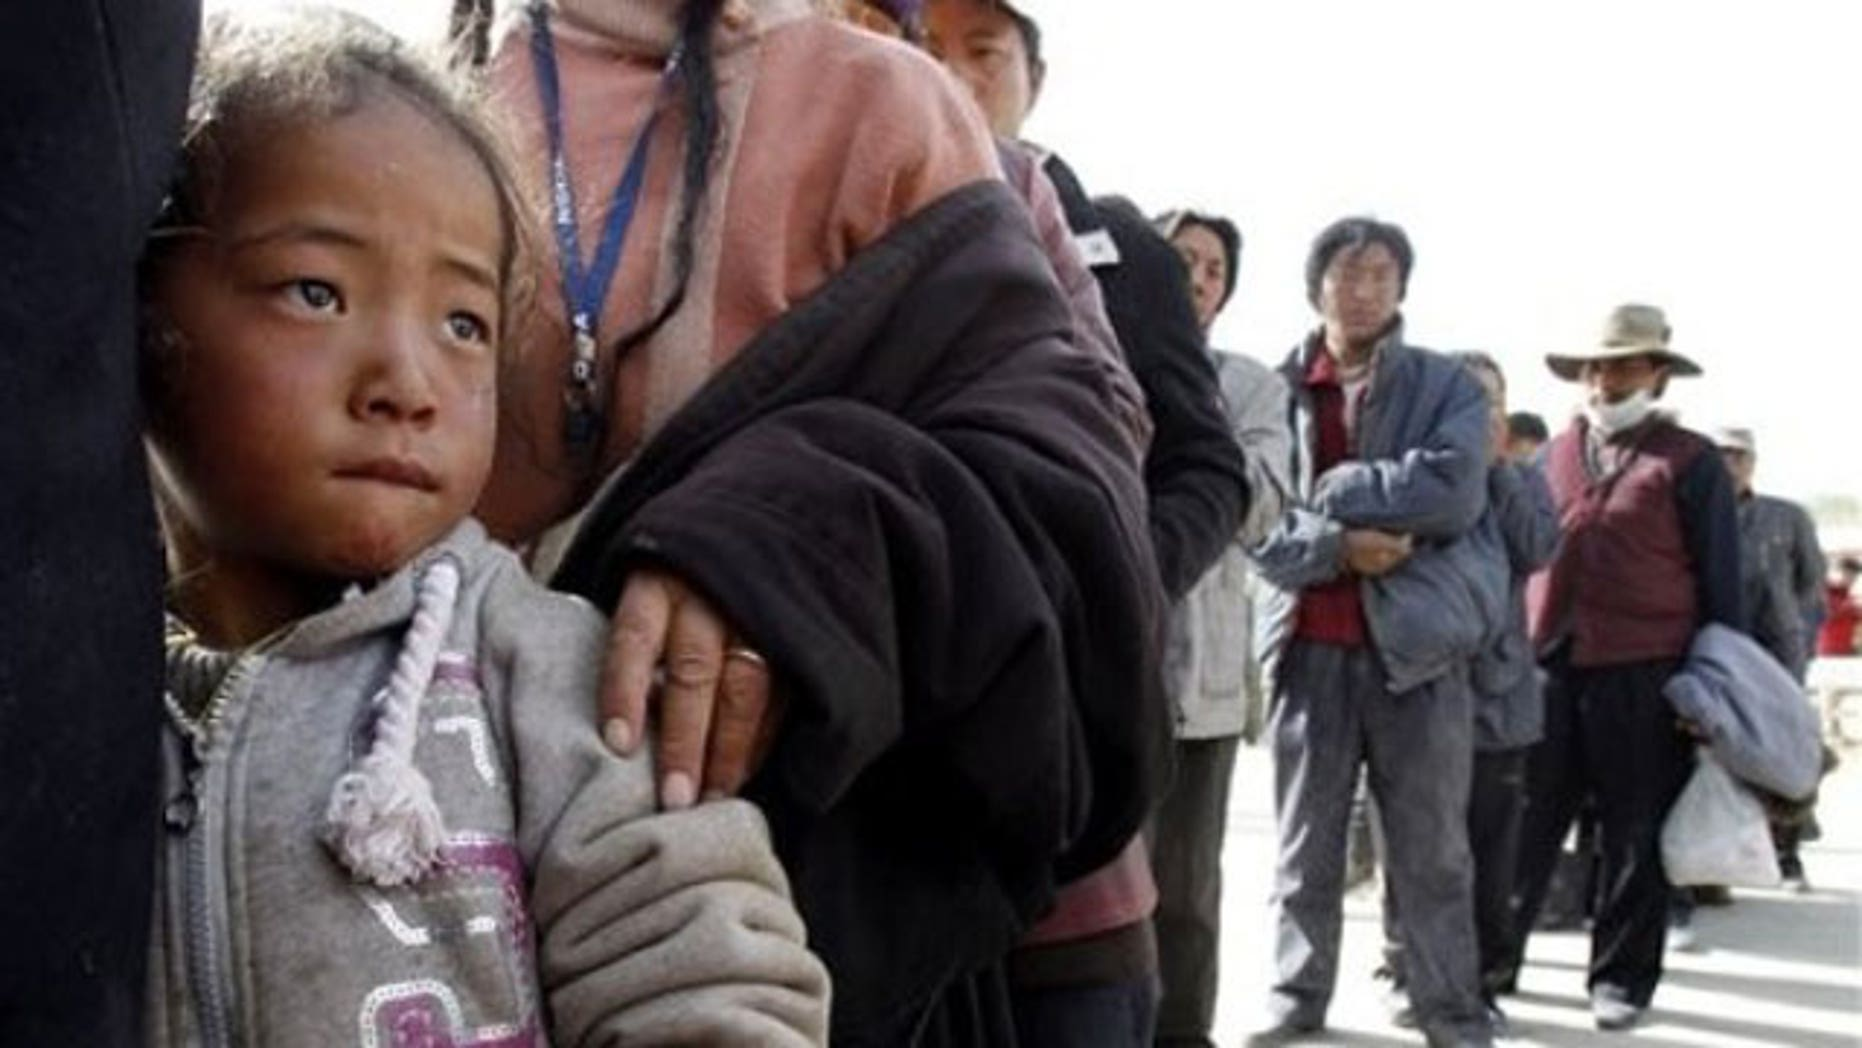 A Tibetan child stands in a line waiting for medical treatment at a temporary hospital set up for quake victims in earthquake-hit Yushu county in west China's Qinghai province (AP).